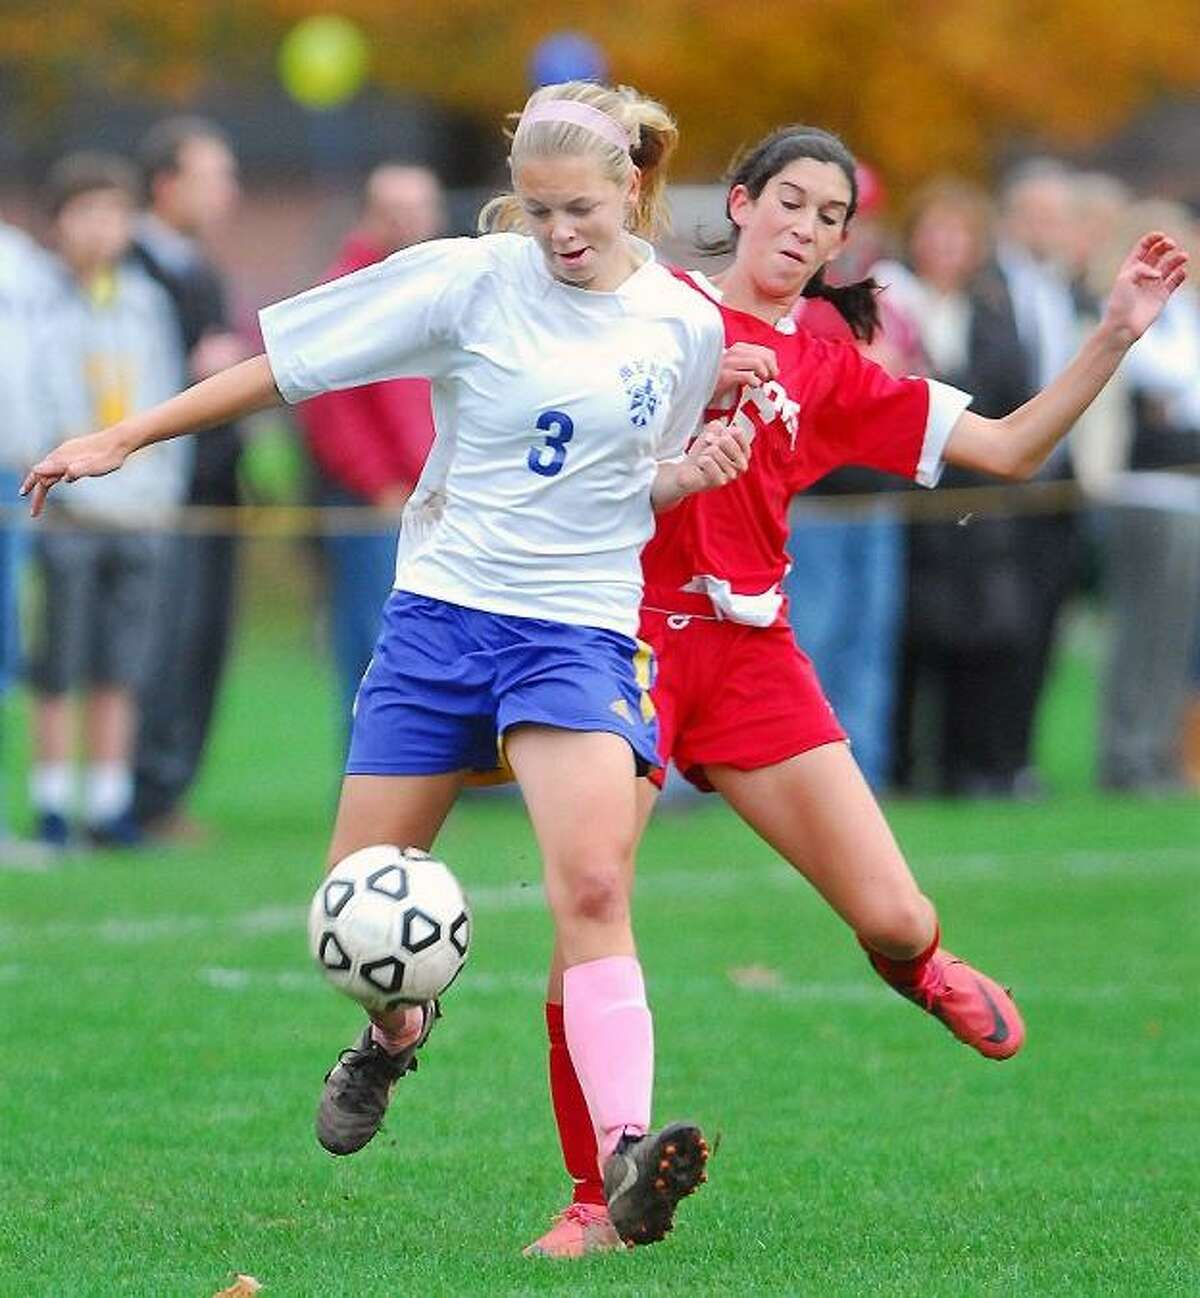 CATHERINE AVALONE/THE MIDDLETOWN PRESS Mercy midfielder Vicky Scott battles Branford's Sara Consolo in the second half of Wednesday's match in Middletown. Mercy won, 5-1.